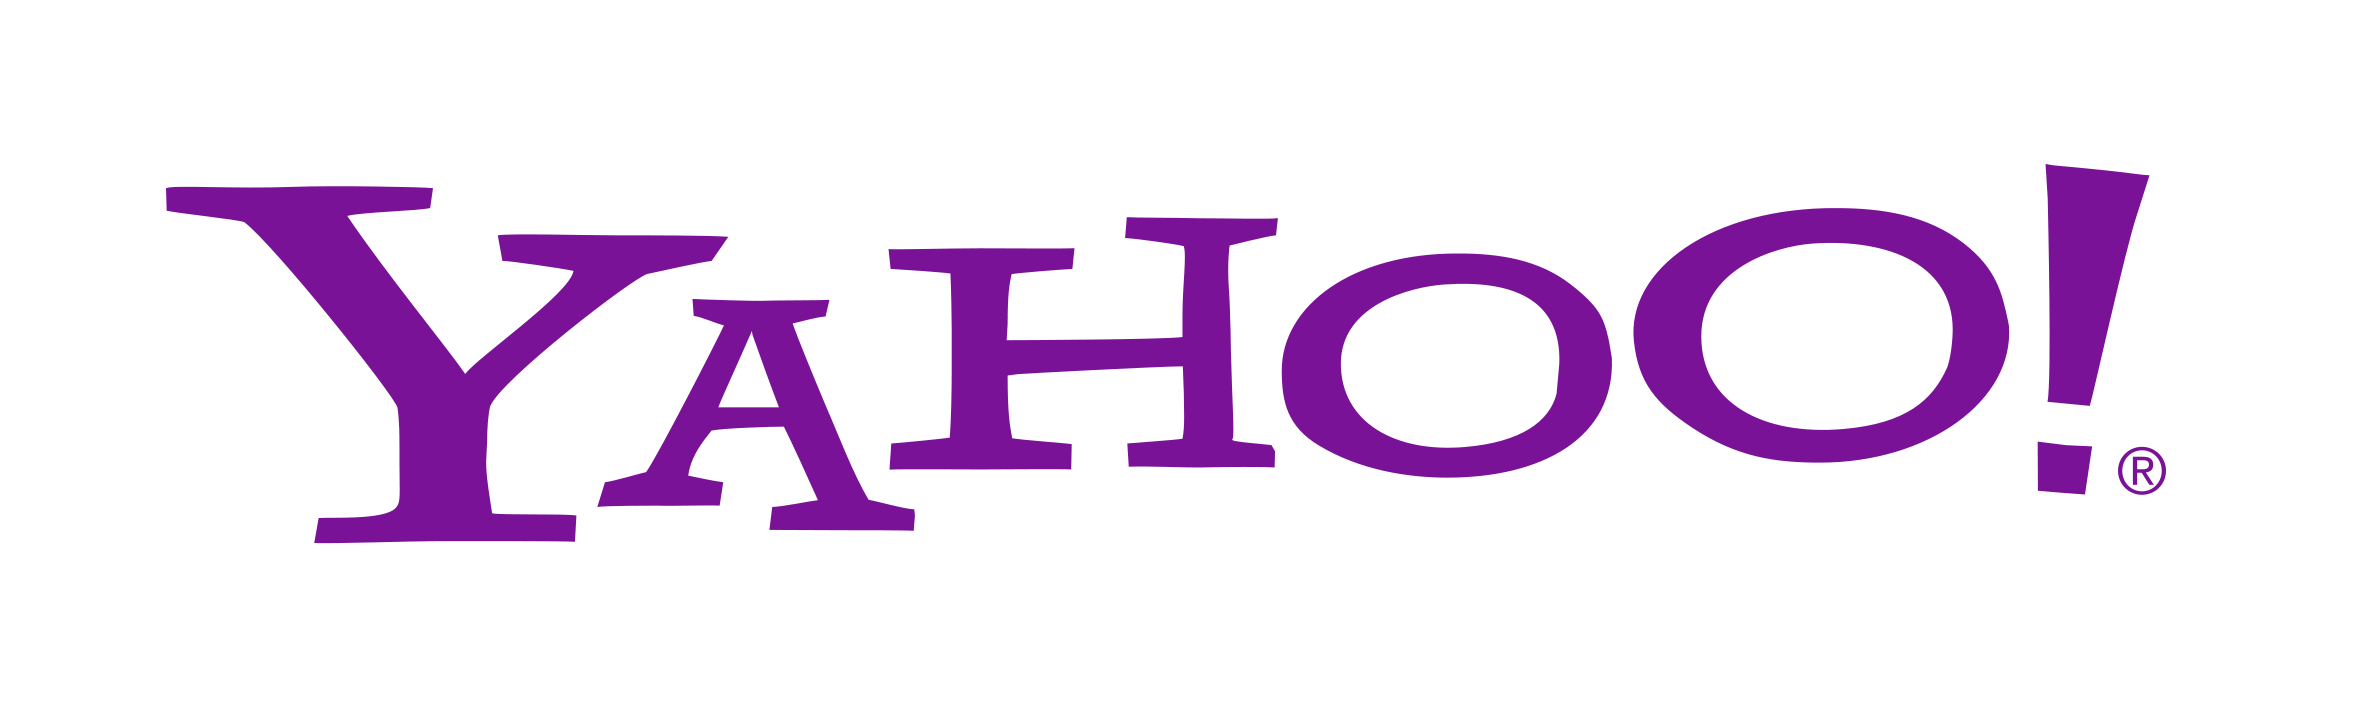 yahoo-website logo